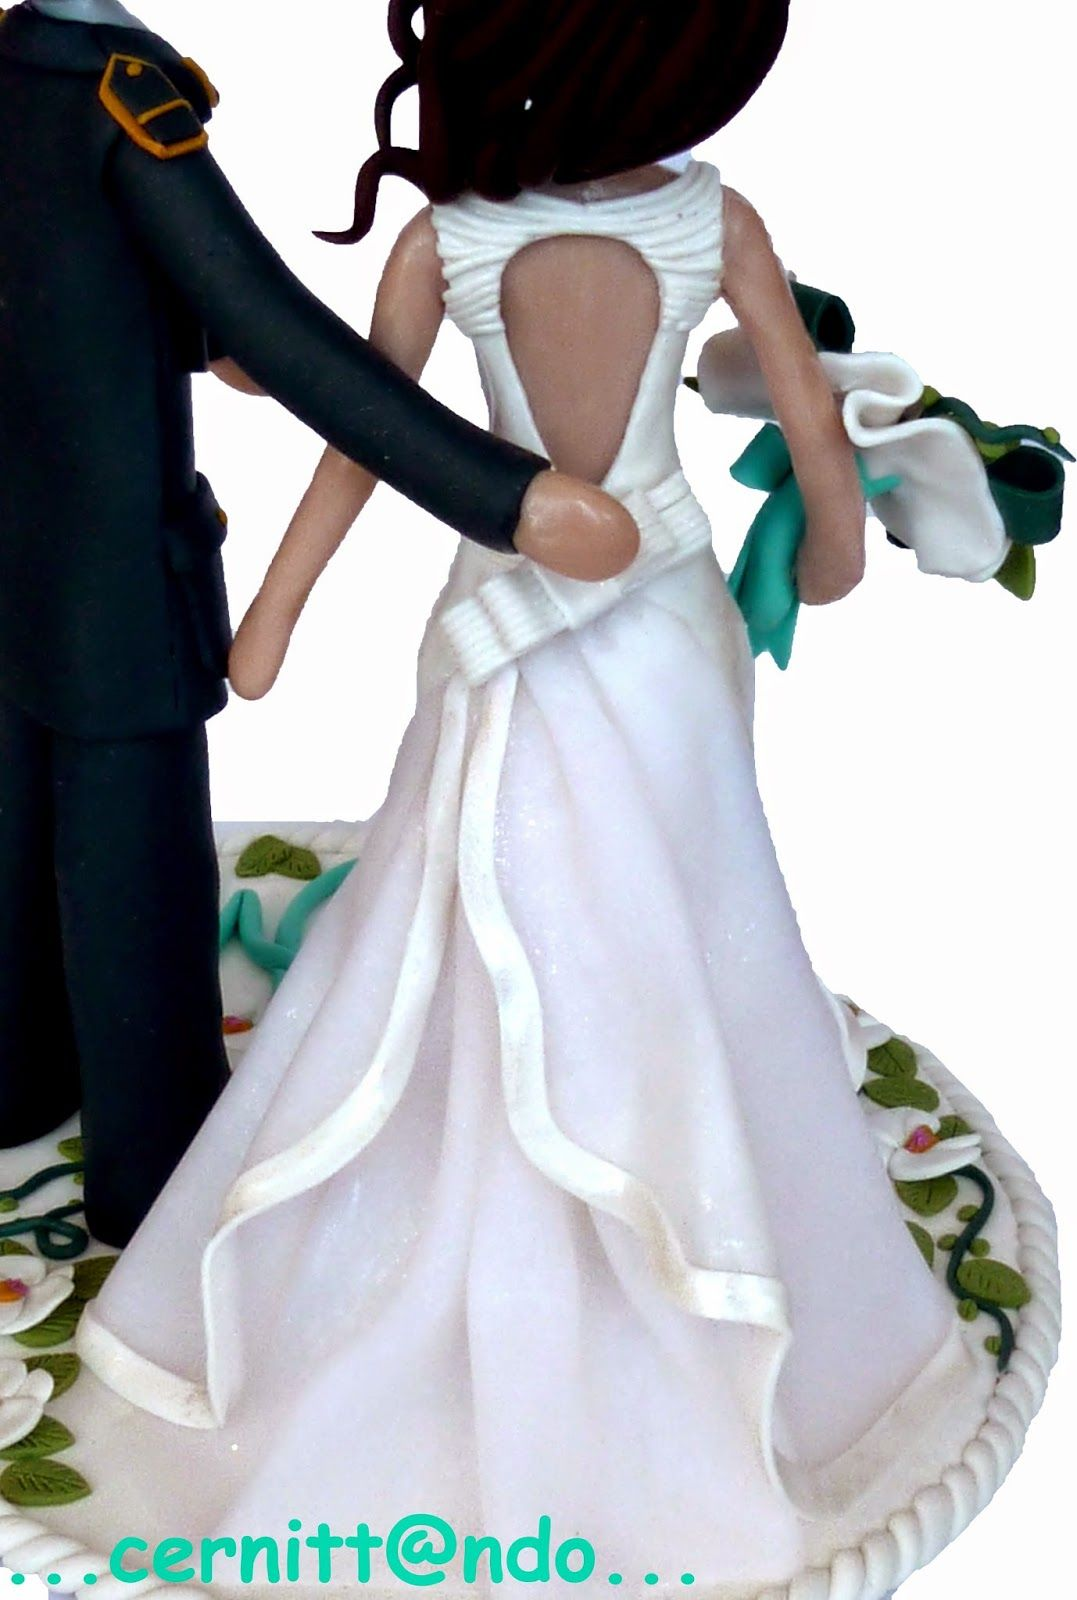 polymer clay wedding cake topper | Notables | Pinterest | Polymer ...